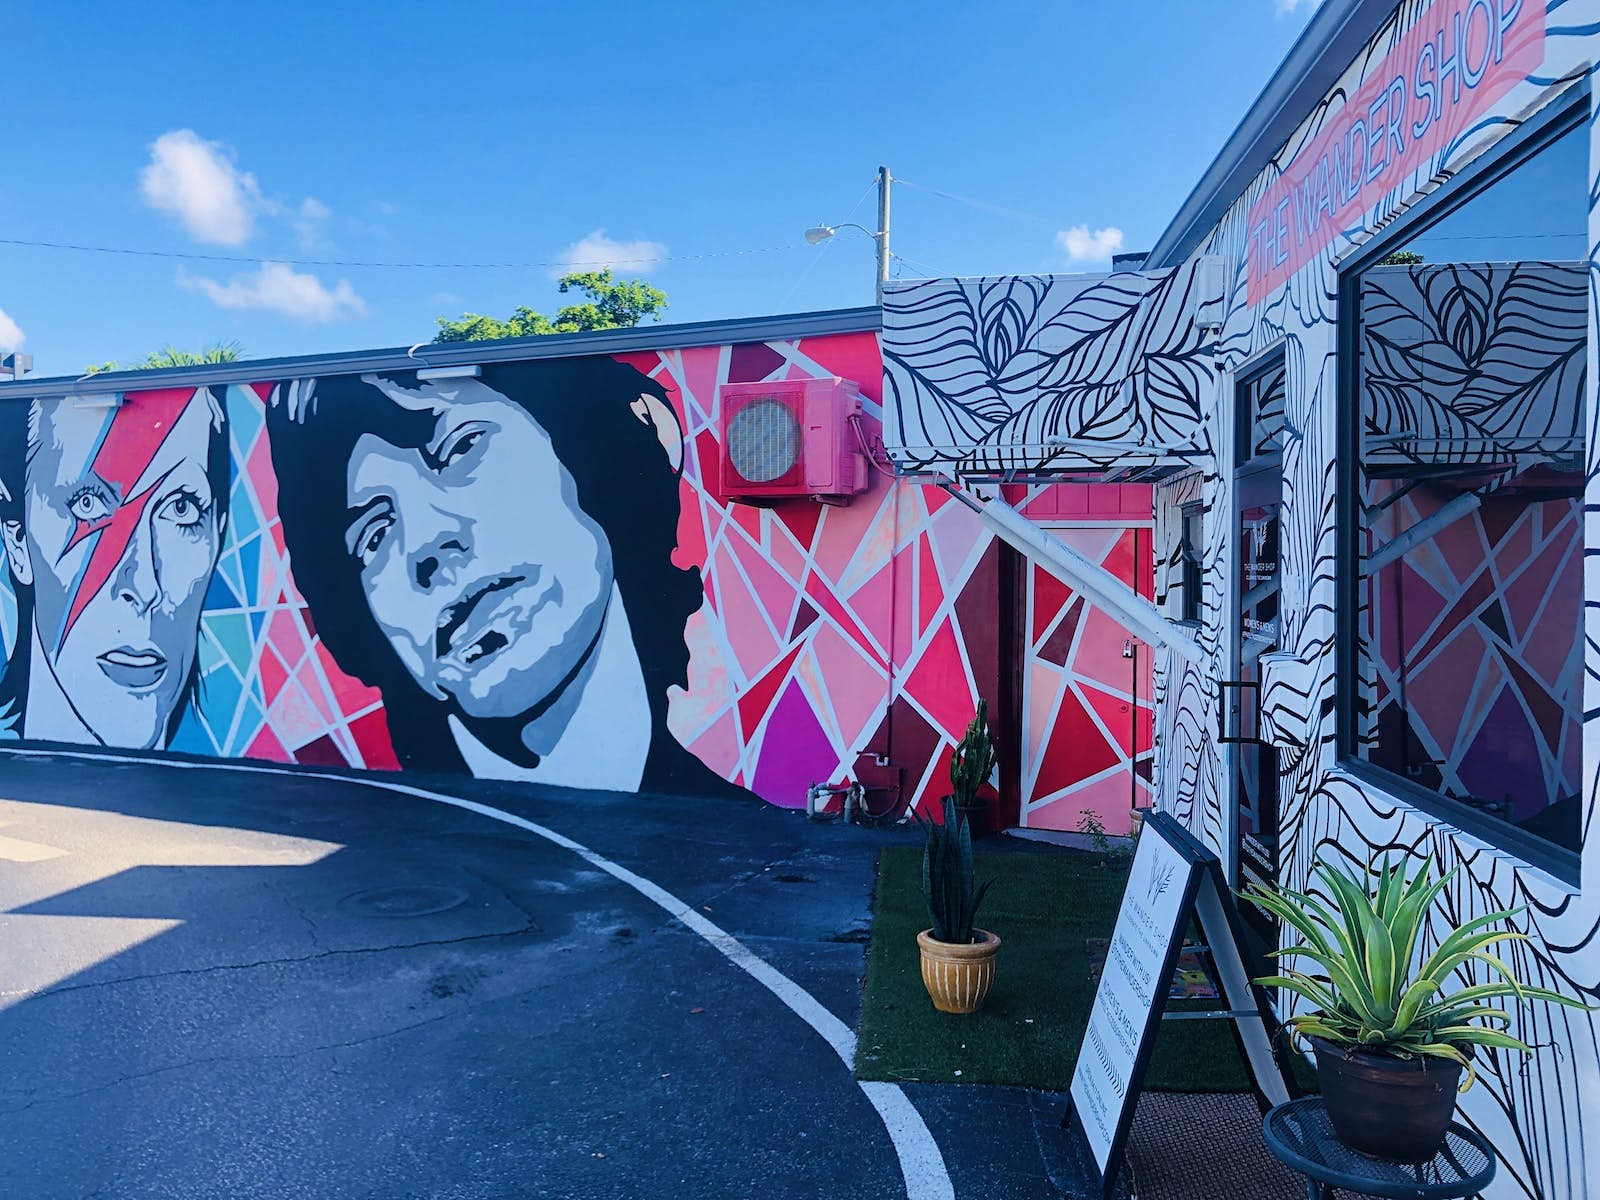 A mural of David Bowie and Mick Jagger in pink, grey and purple shades covers a wall next to a small boutique.